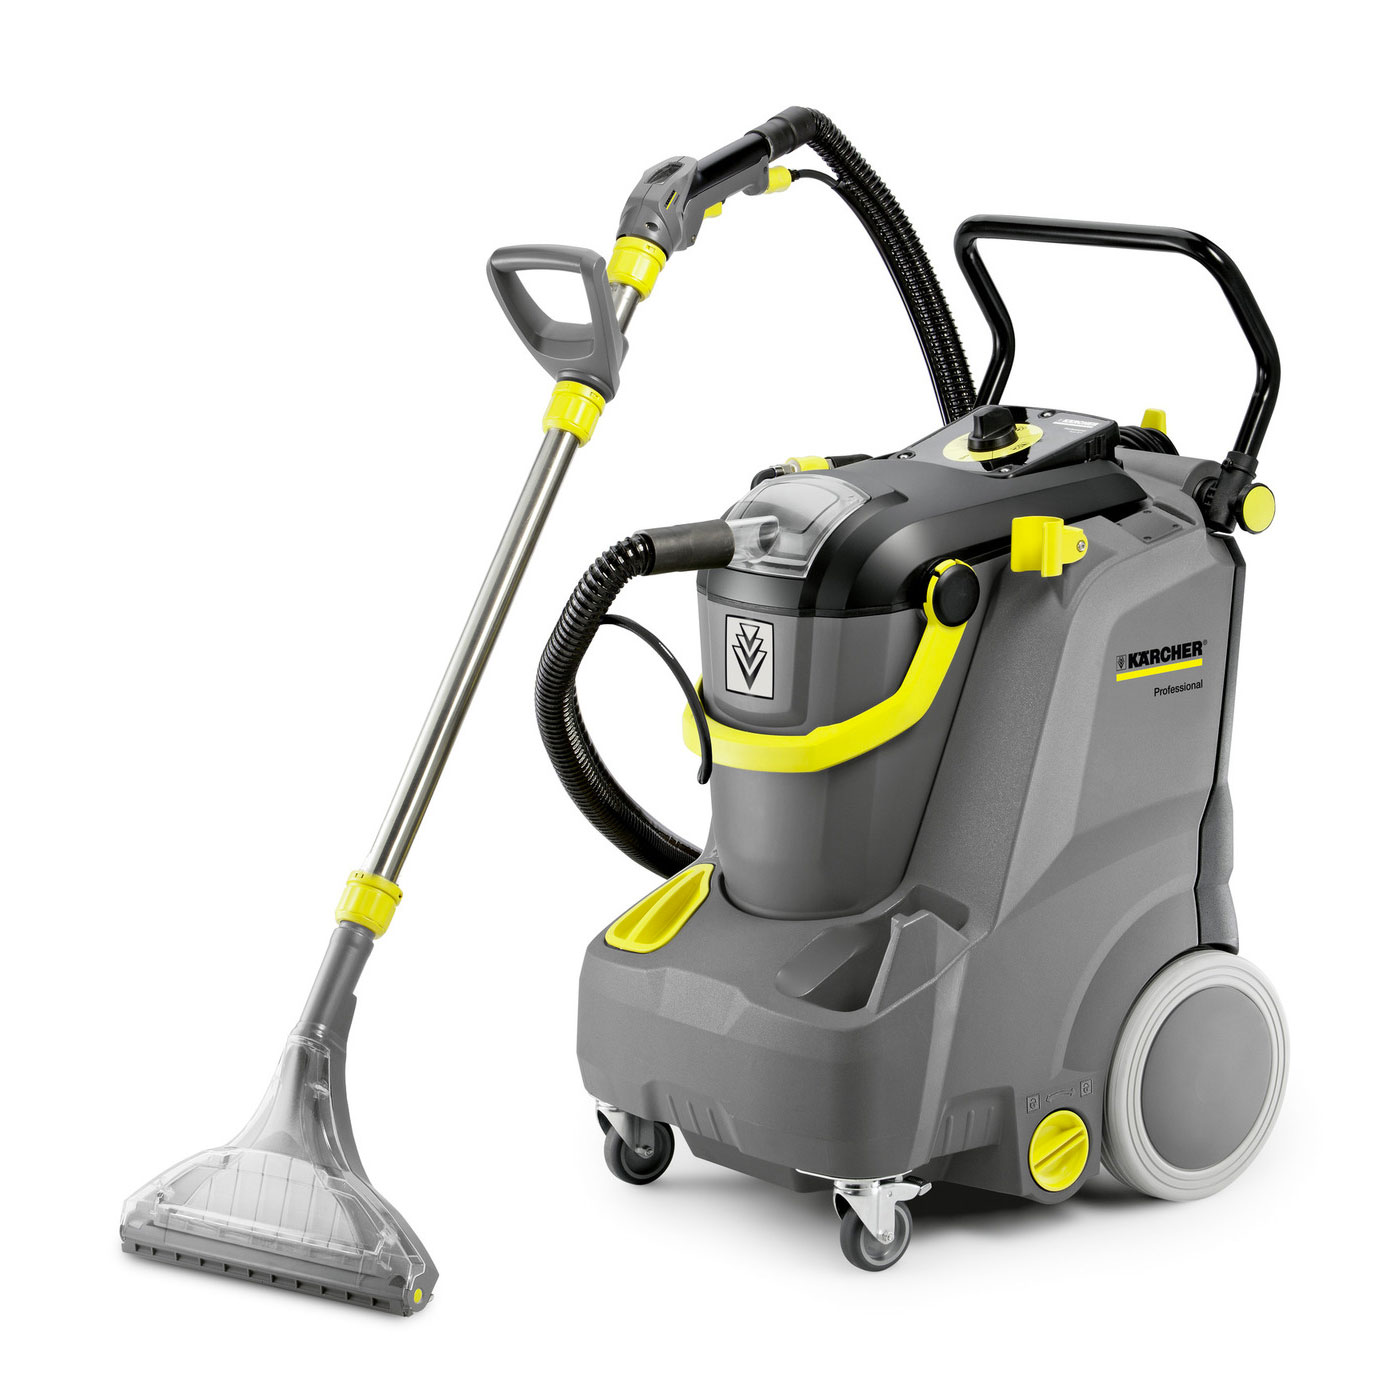 Karcher 1.101-126.0 Puzzi 30/3 Quiet Low Noise Carpet Cleaning Machine with Hose Set and Wand 8 Gal Freight Included